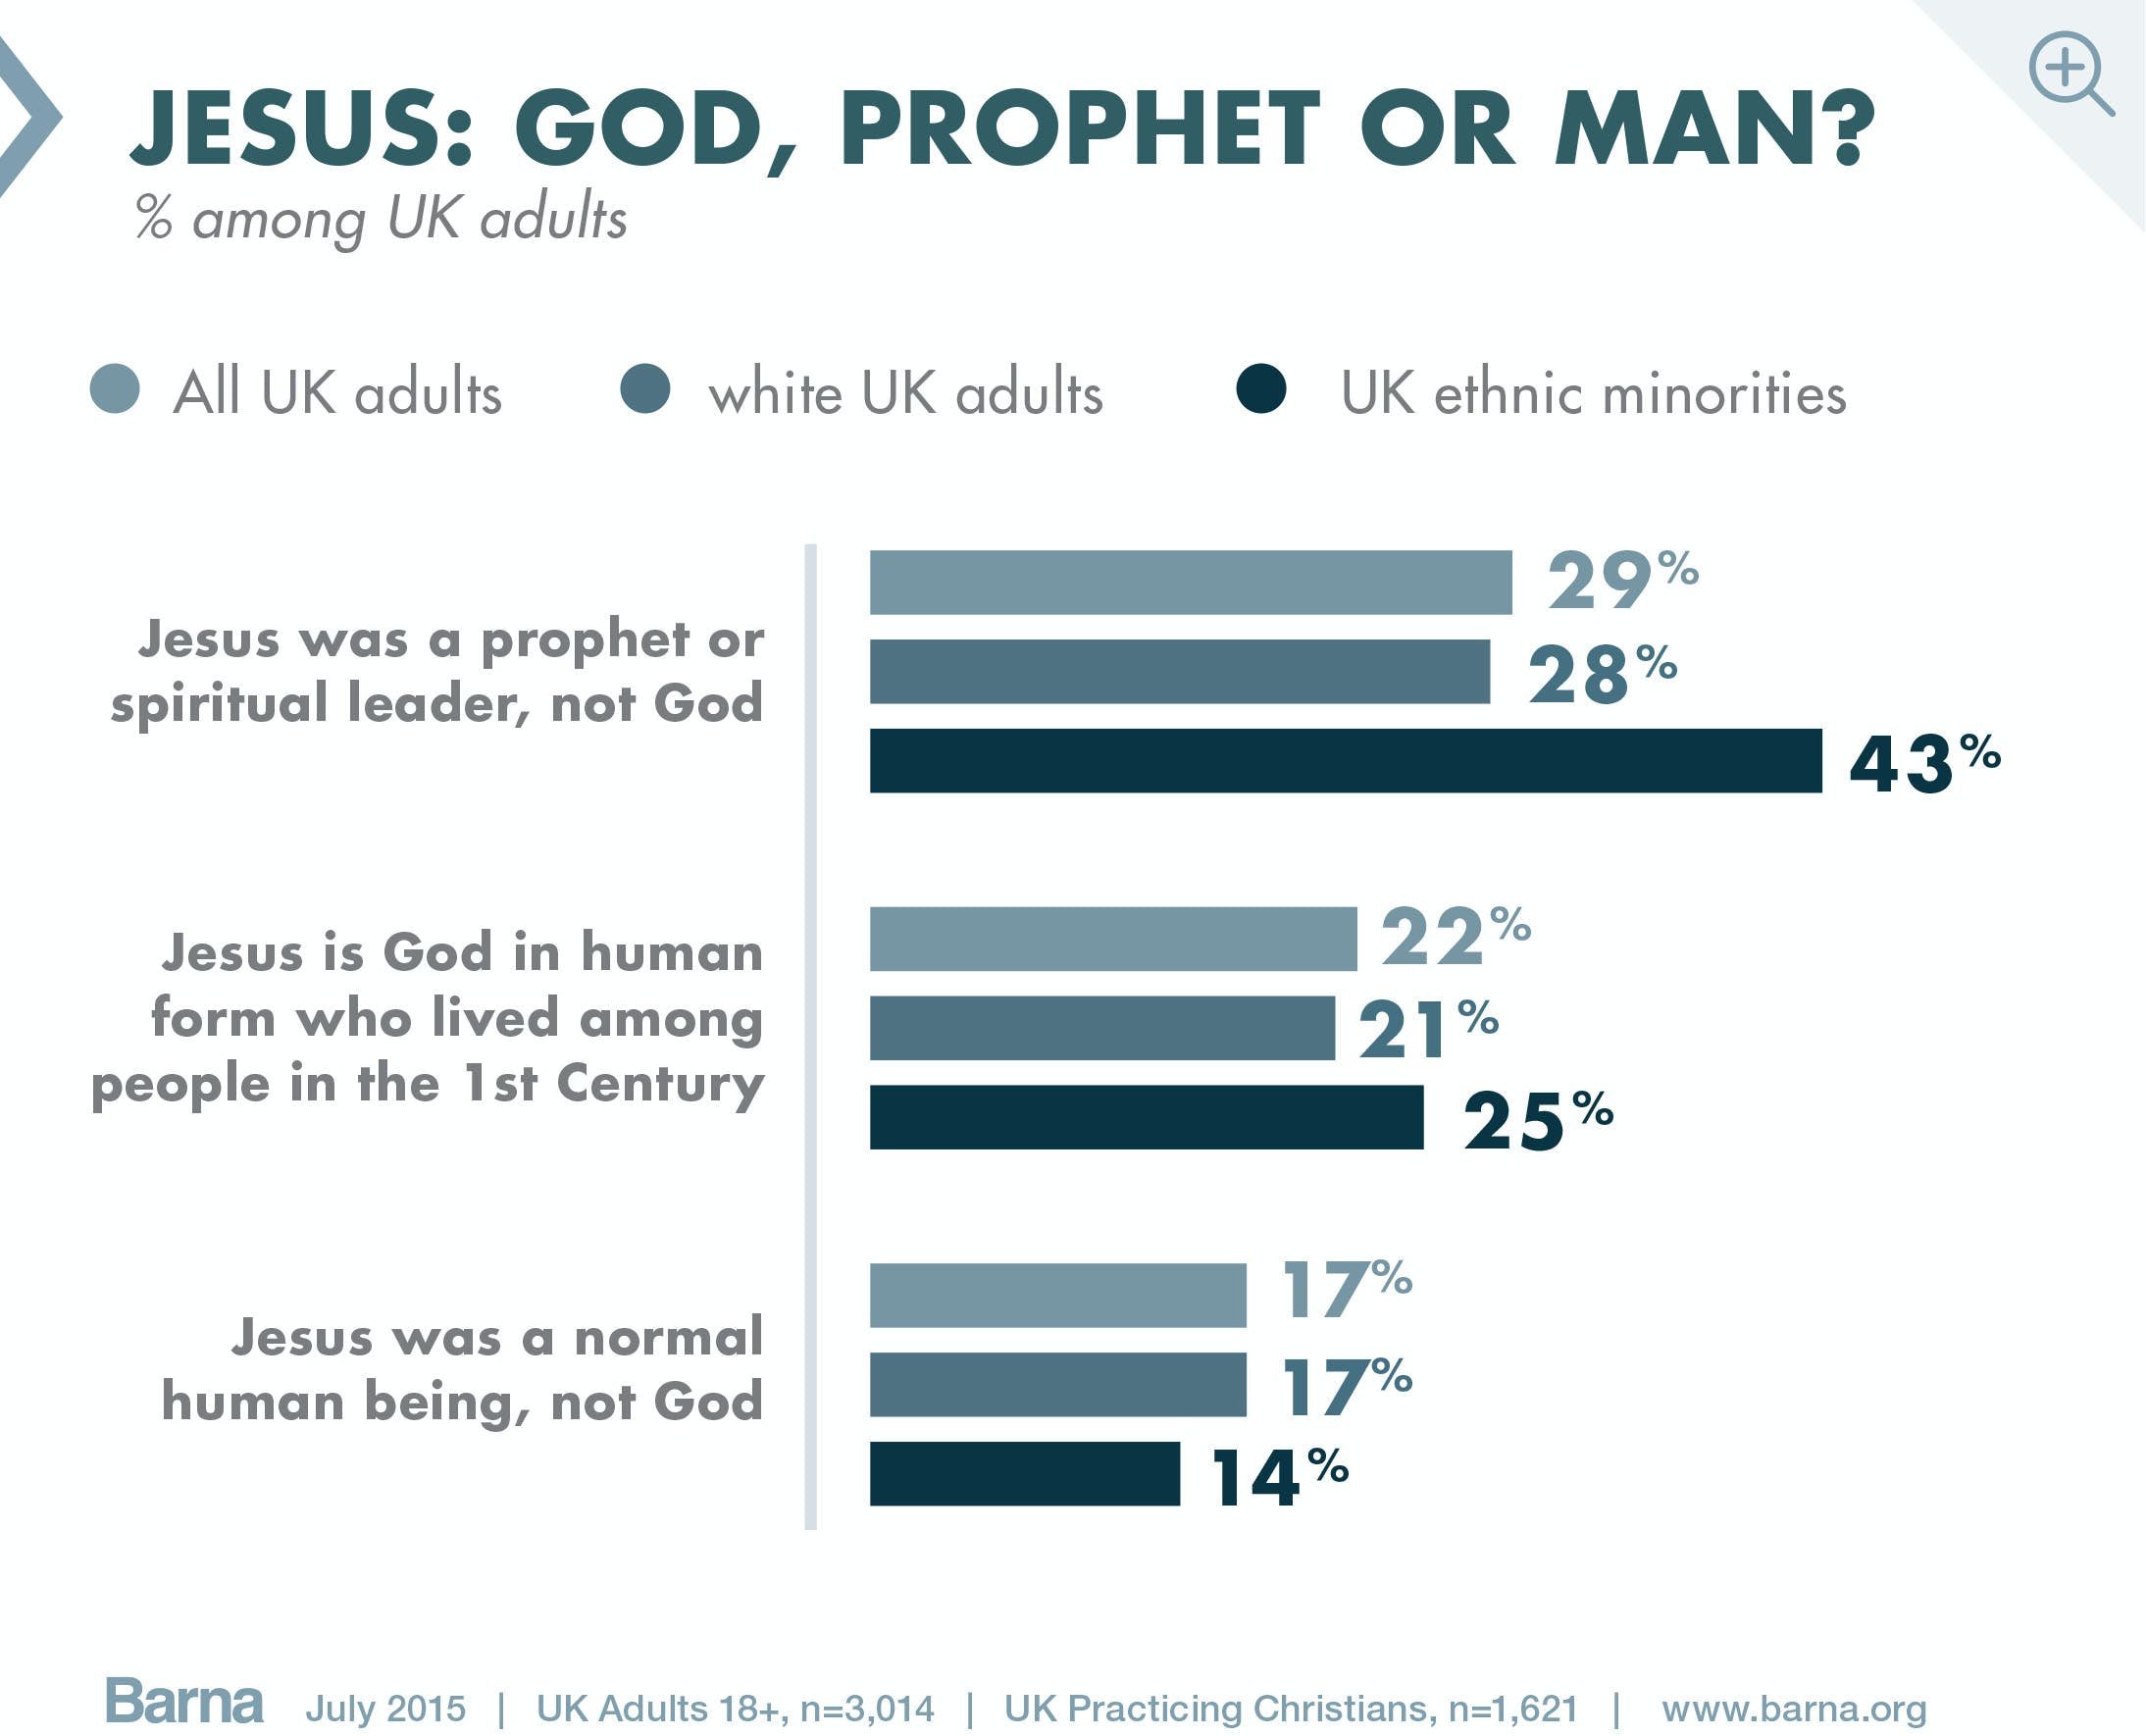 barna research on jesus Research shows biblical skepticism rising new research from barna shows that biblical skepticism is on the rise, particularly (and not surprisingly) among.